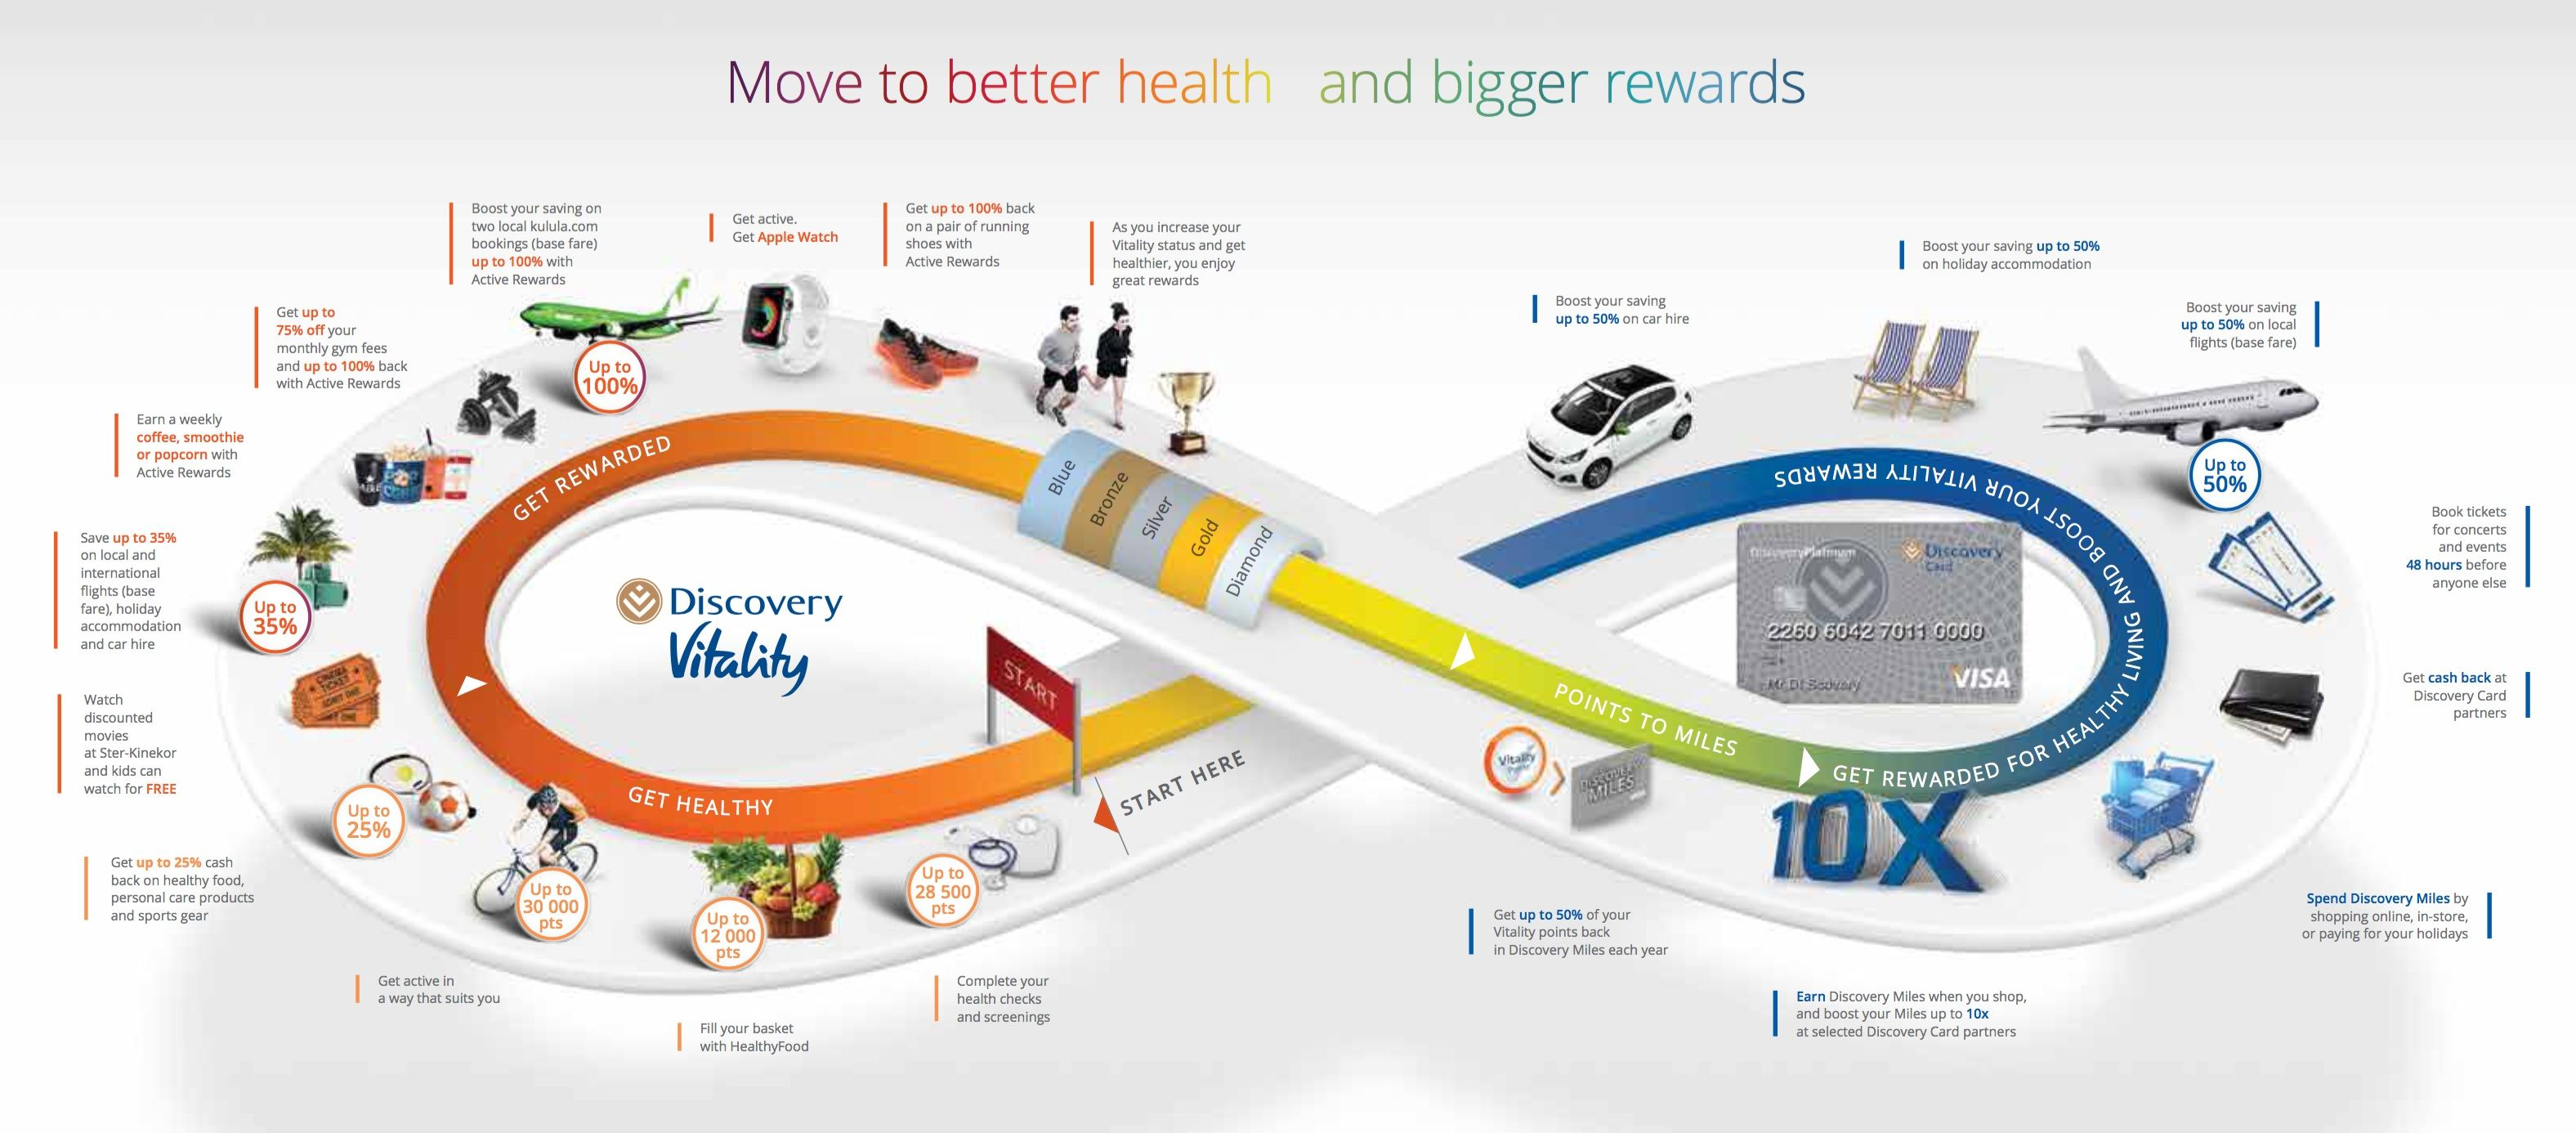 Discovery Vitality price increases and benefits changes